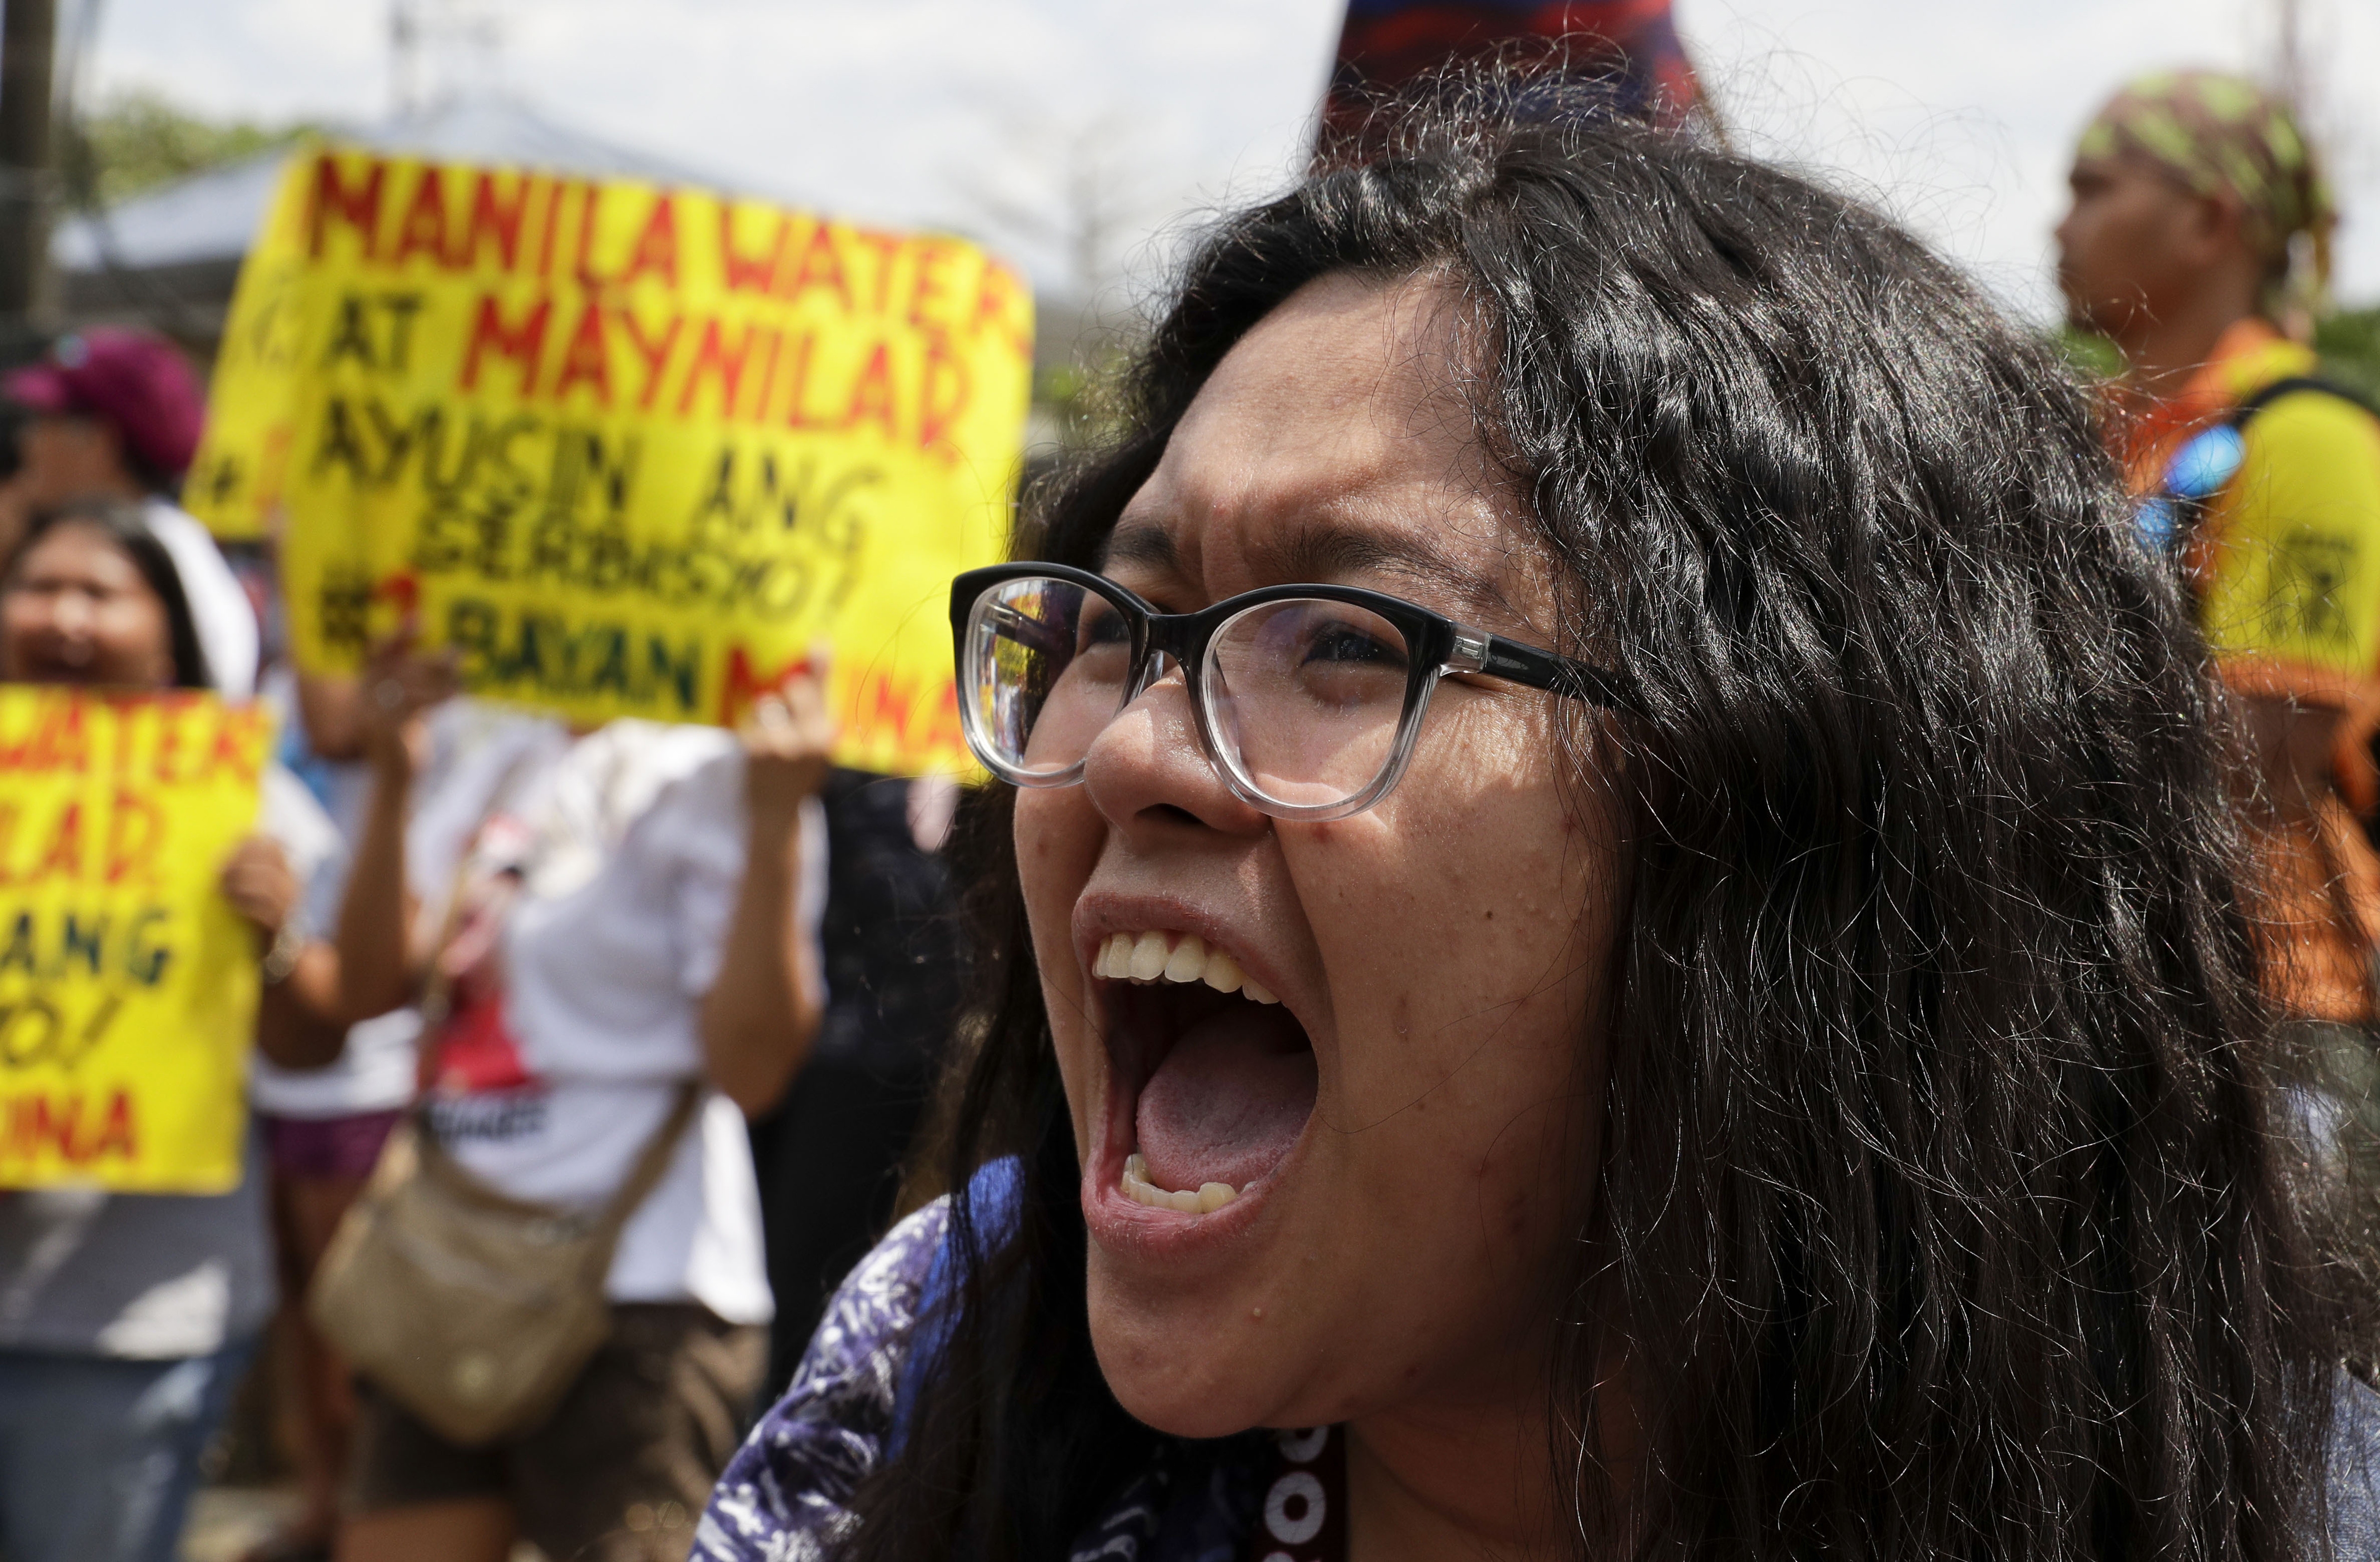 A protester shouts during a rally outside the offices of the Metropolitan Waterworks and Sewerage System and Manila Water Company in Quezon city, metropolitan Manila, Philippines to demand better water supply, March 15, 2019.